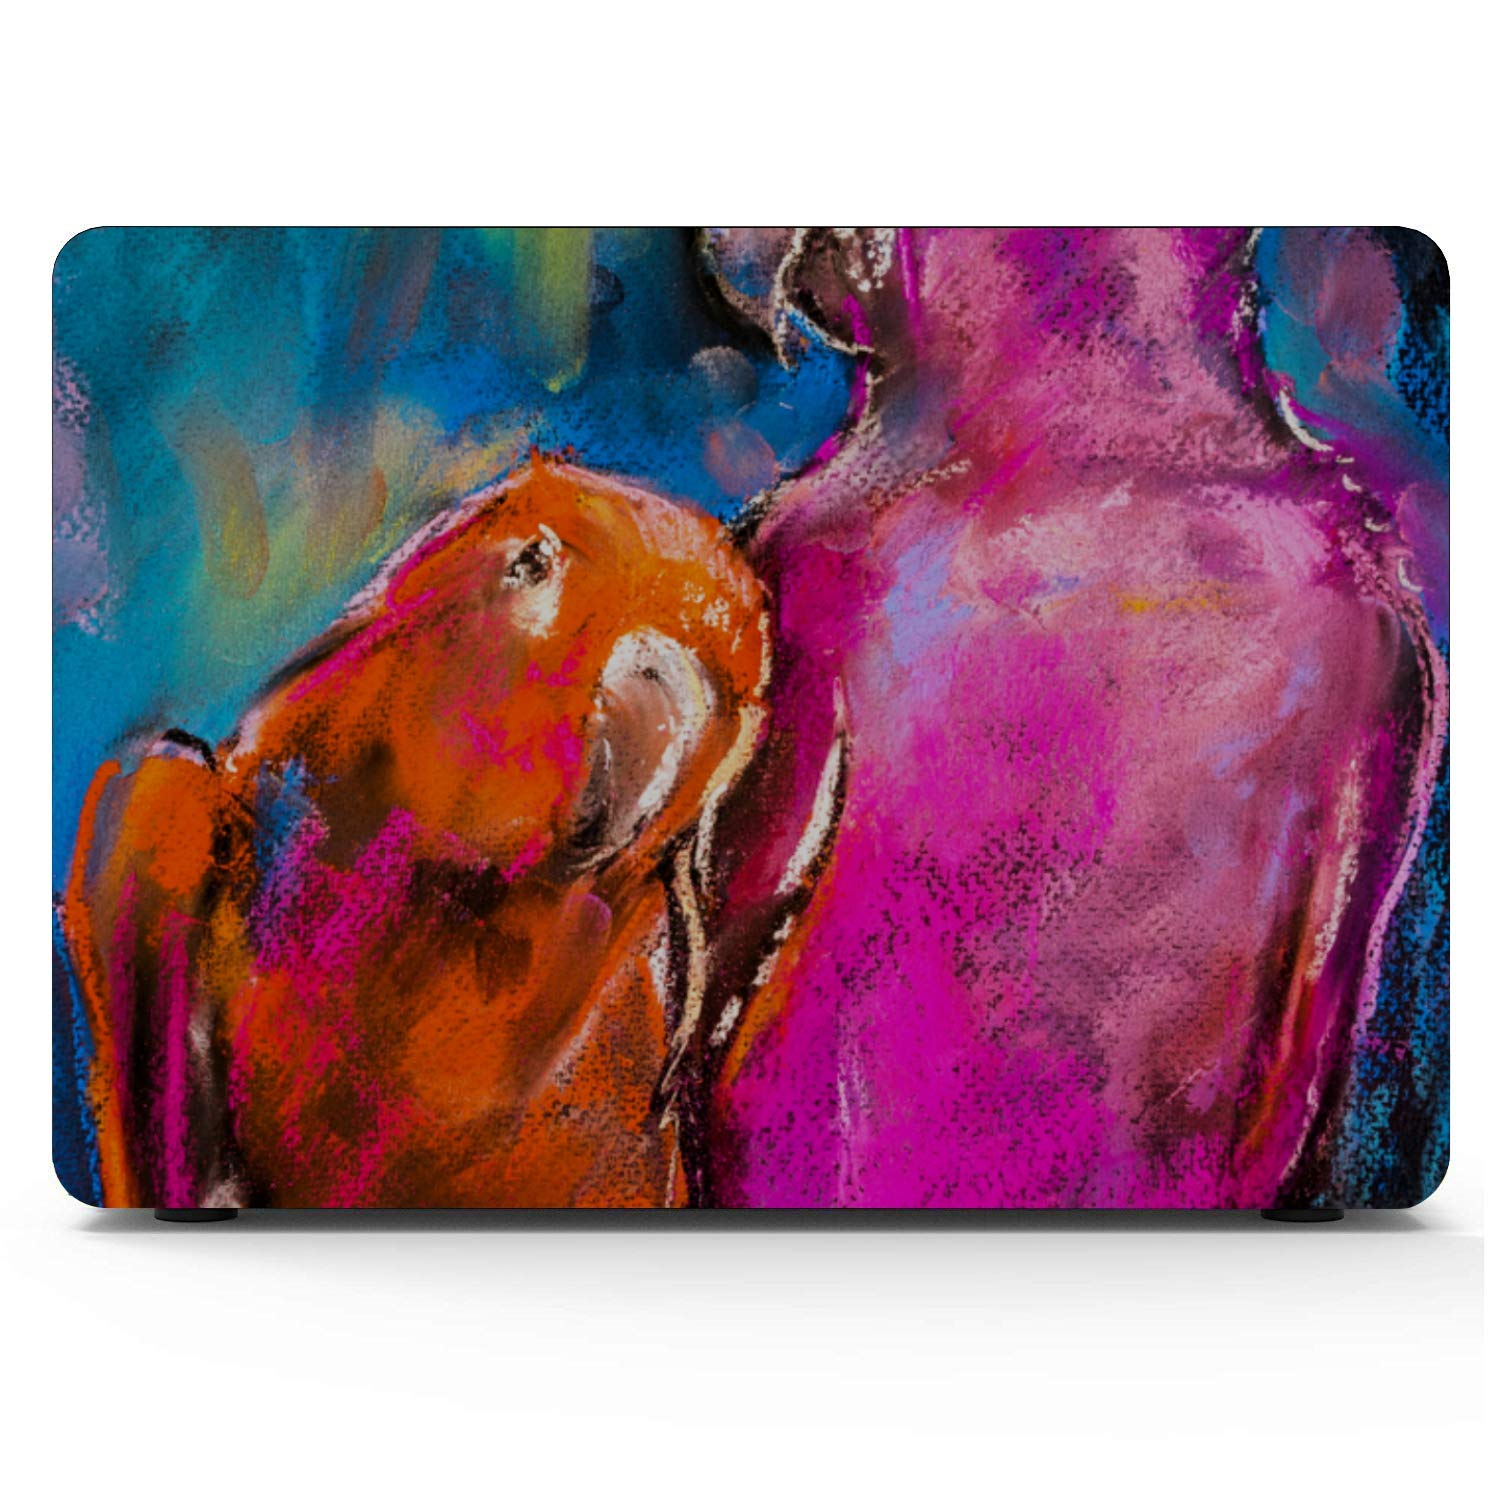 MacBook Case 12 Inch Smart Cute Bird Parrot Oil Painting Plastic Hard Shell Compatible Mac Air 11 Pro 13 15 MacBook Pro Accessories Protection for MacBook 2016-2019 Version